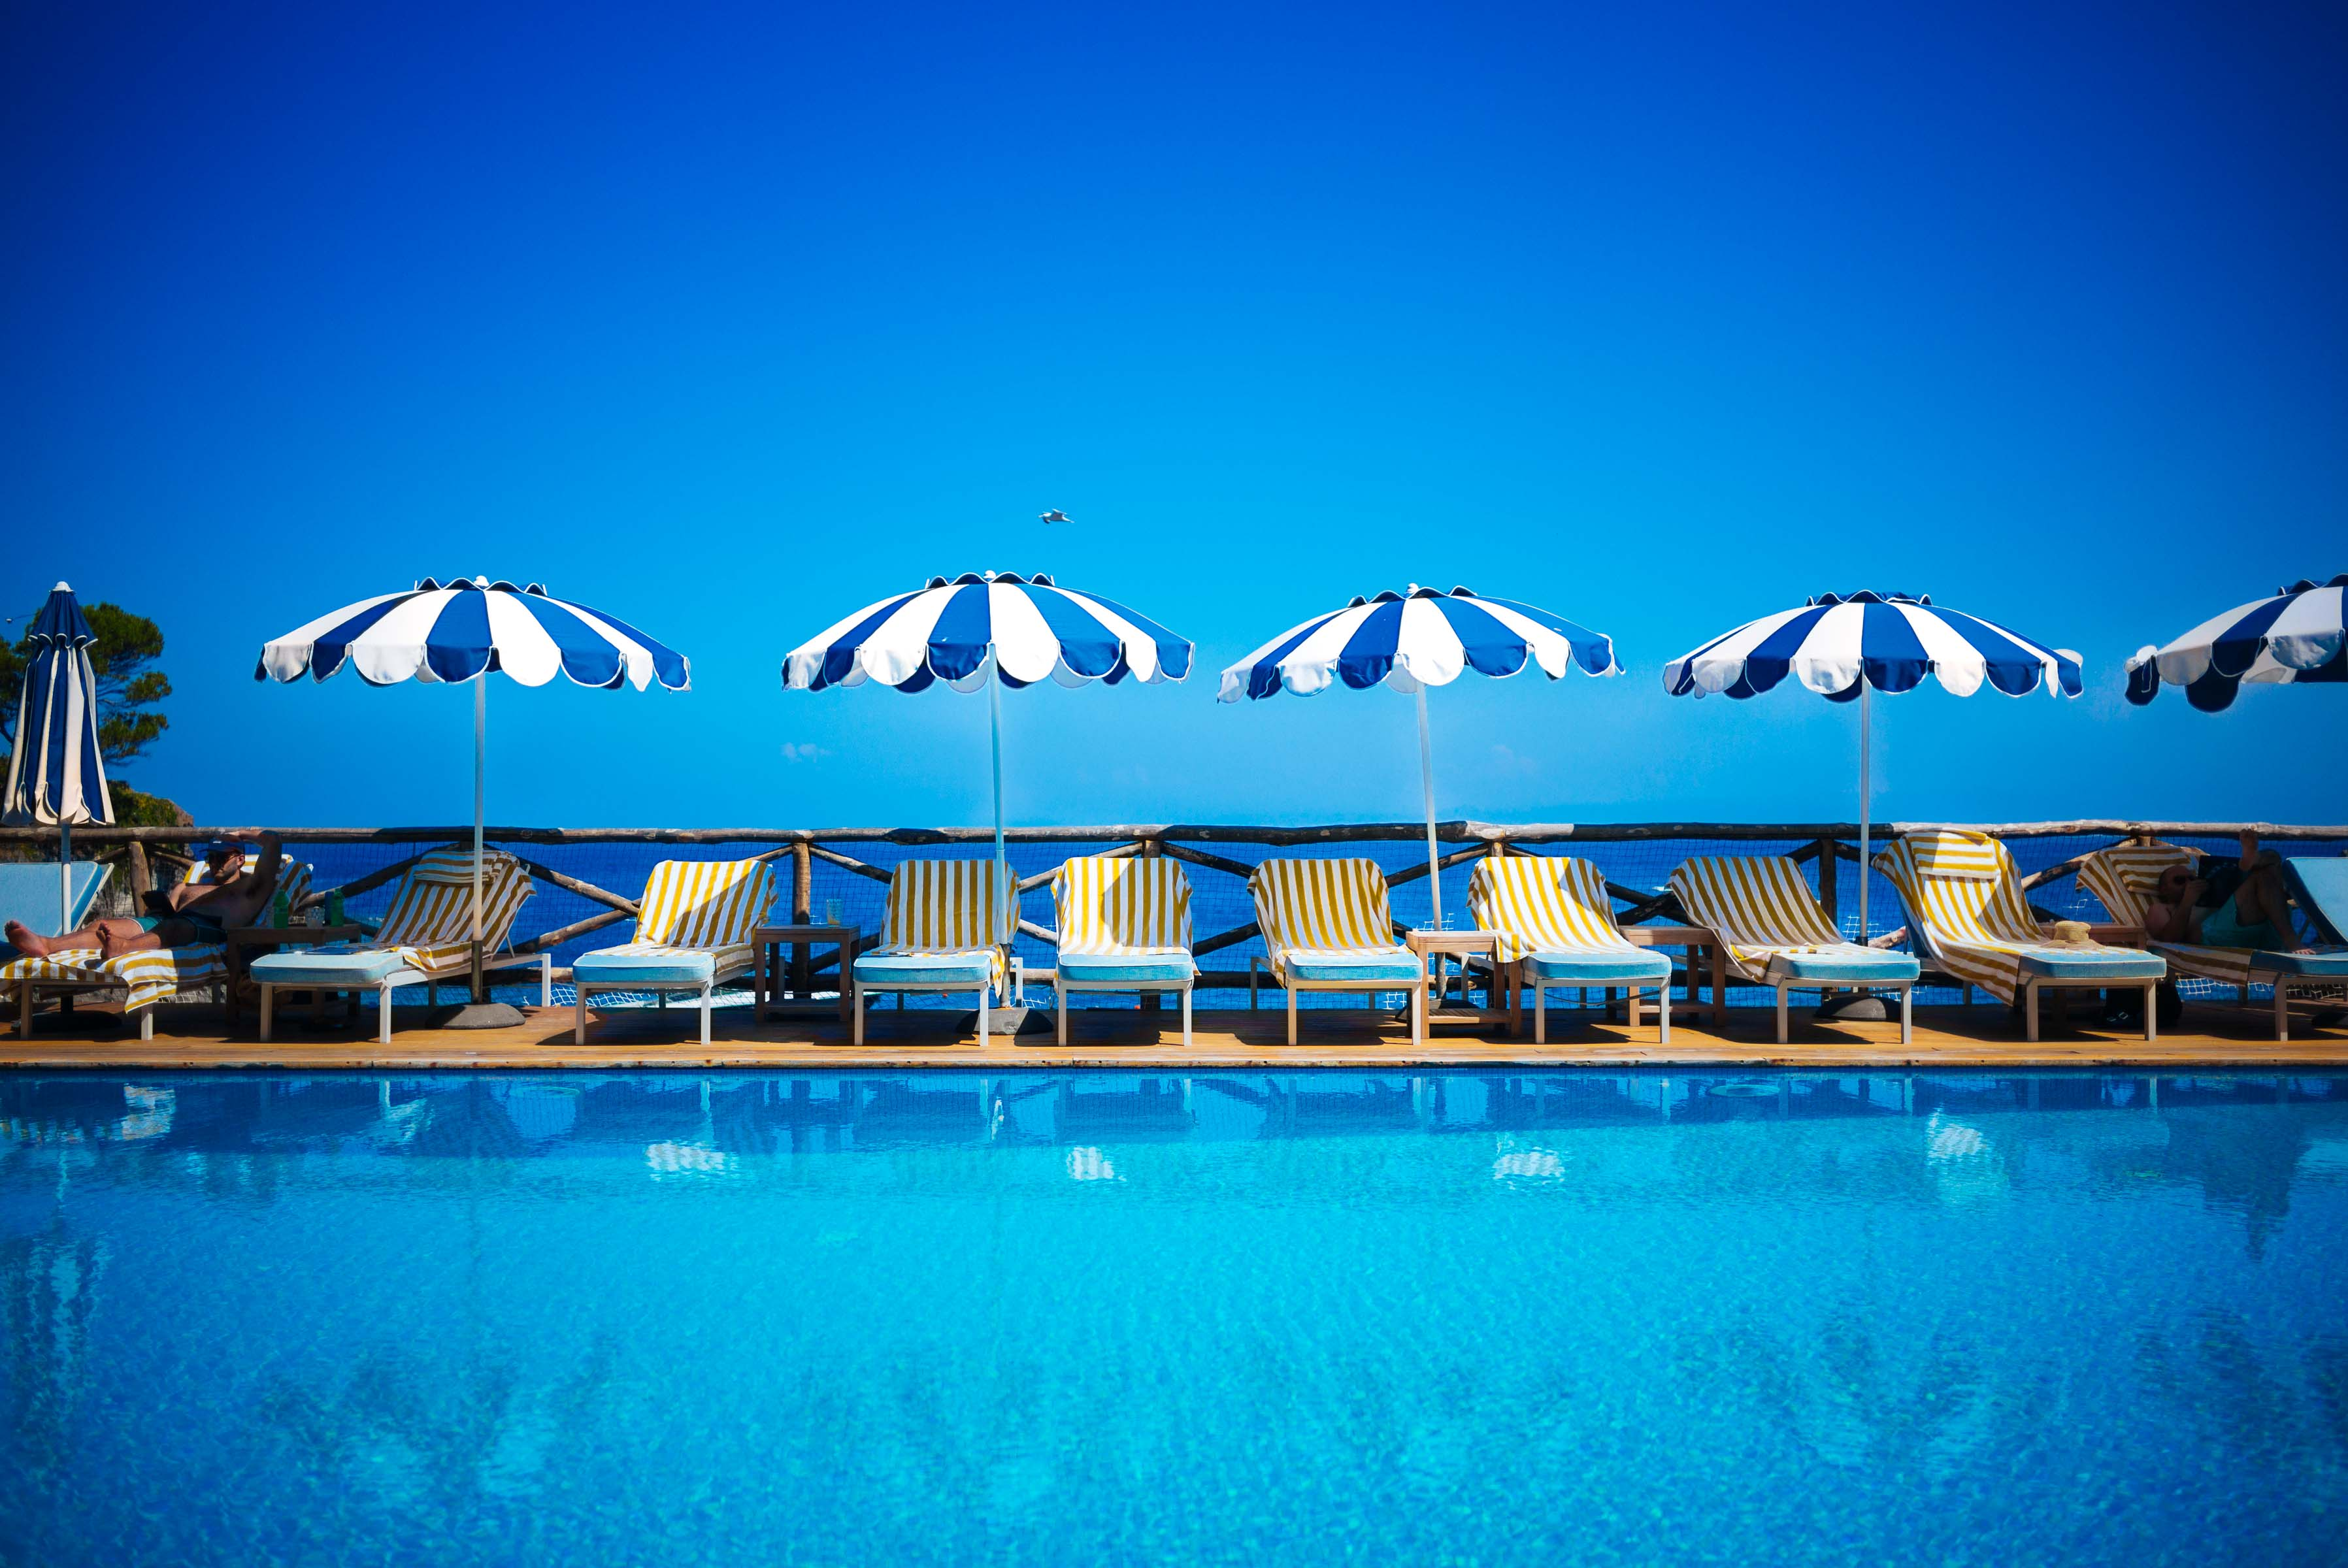 Relax on your Italian vacation by the pool in Ischia, the sister island to Capri, just off the coast of Naples and the Amalfi Coast. Fly directly from New York/Newark to Naples and hop a ferry to stay at the Mezzatorre Hotel Ischia.